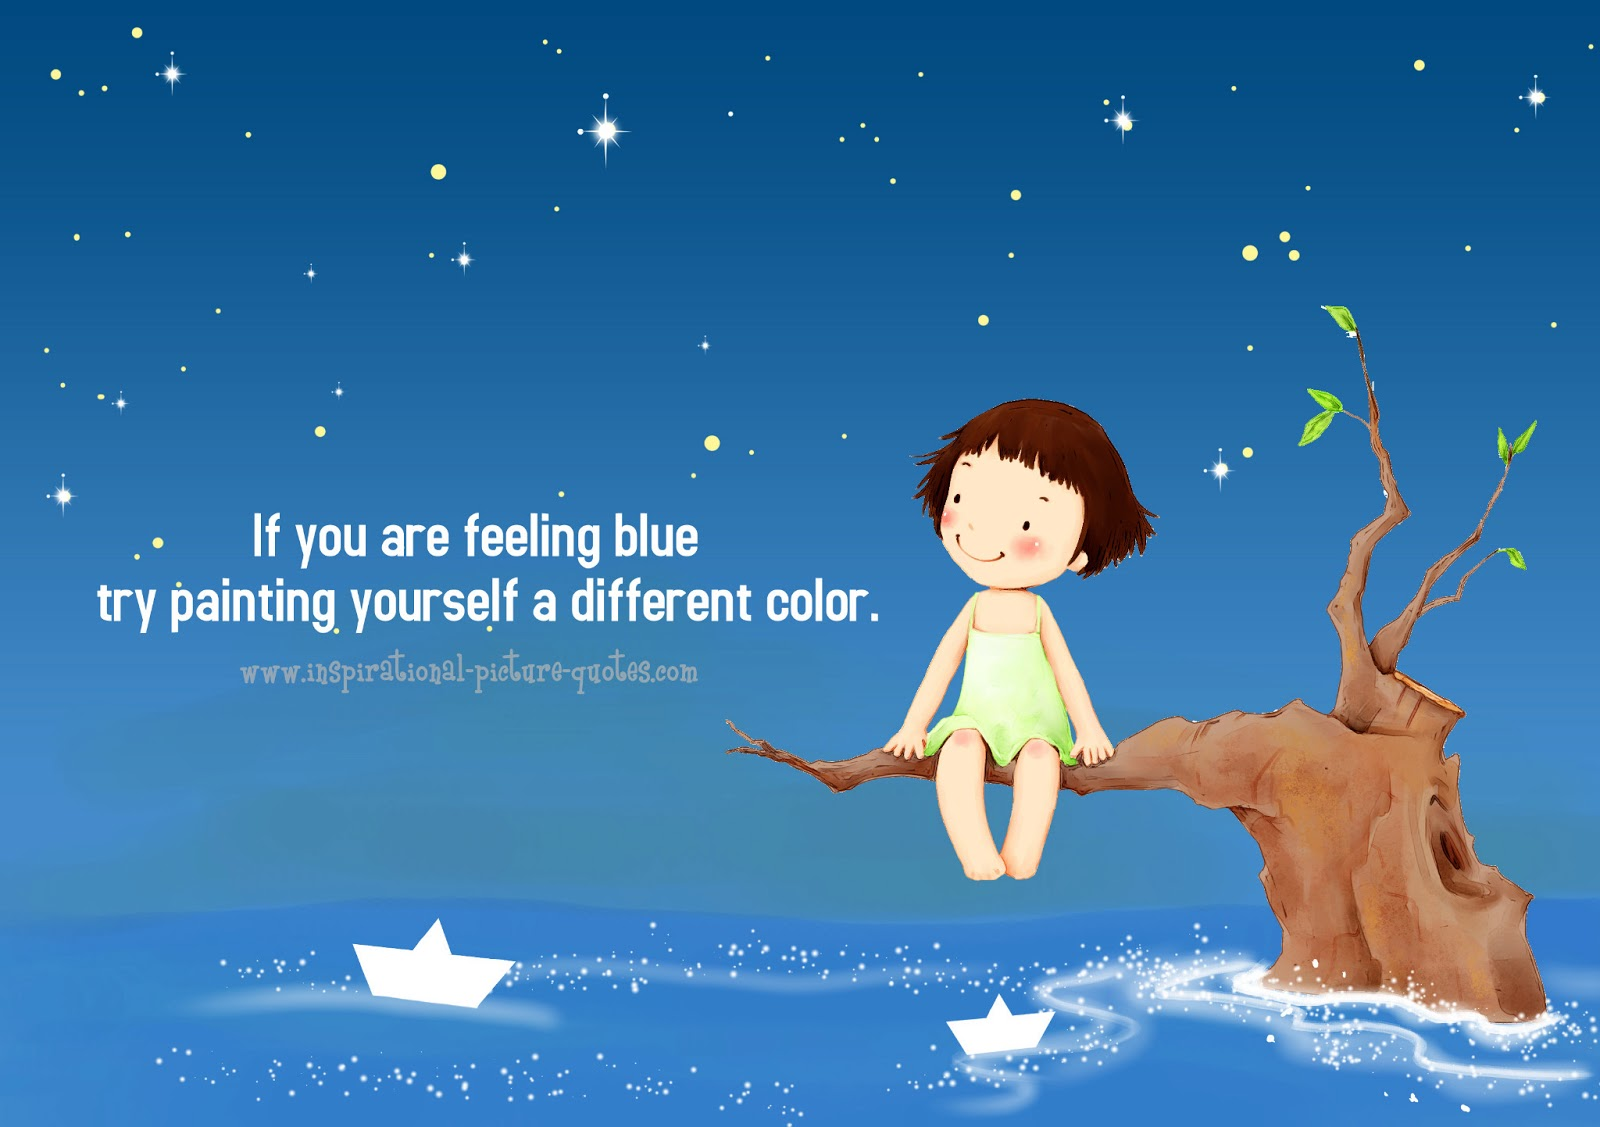 Different colors quotes quotesgram The color blue makes you feel